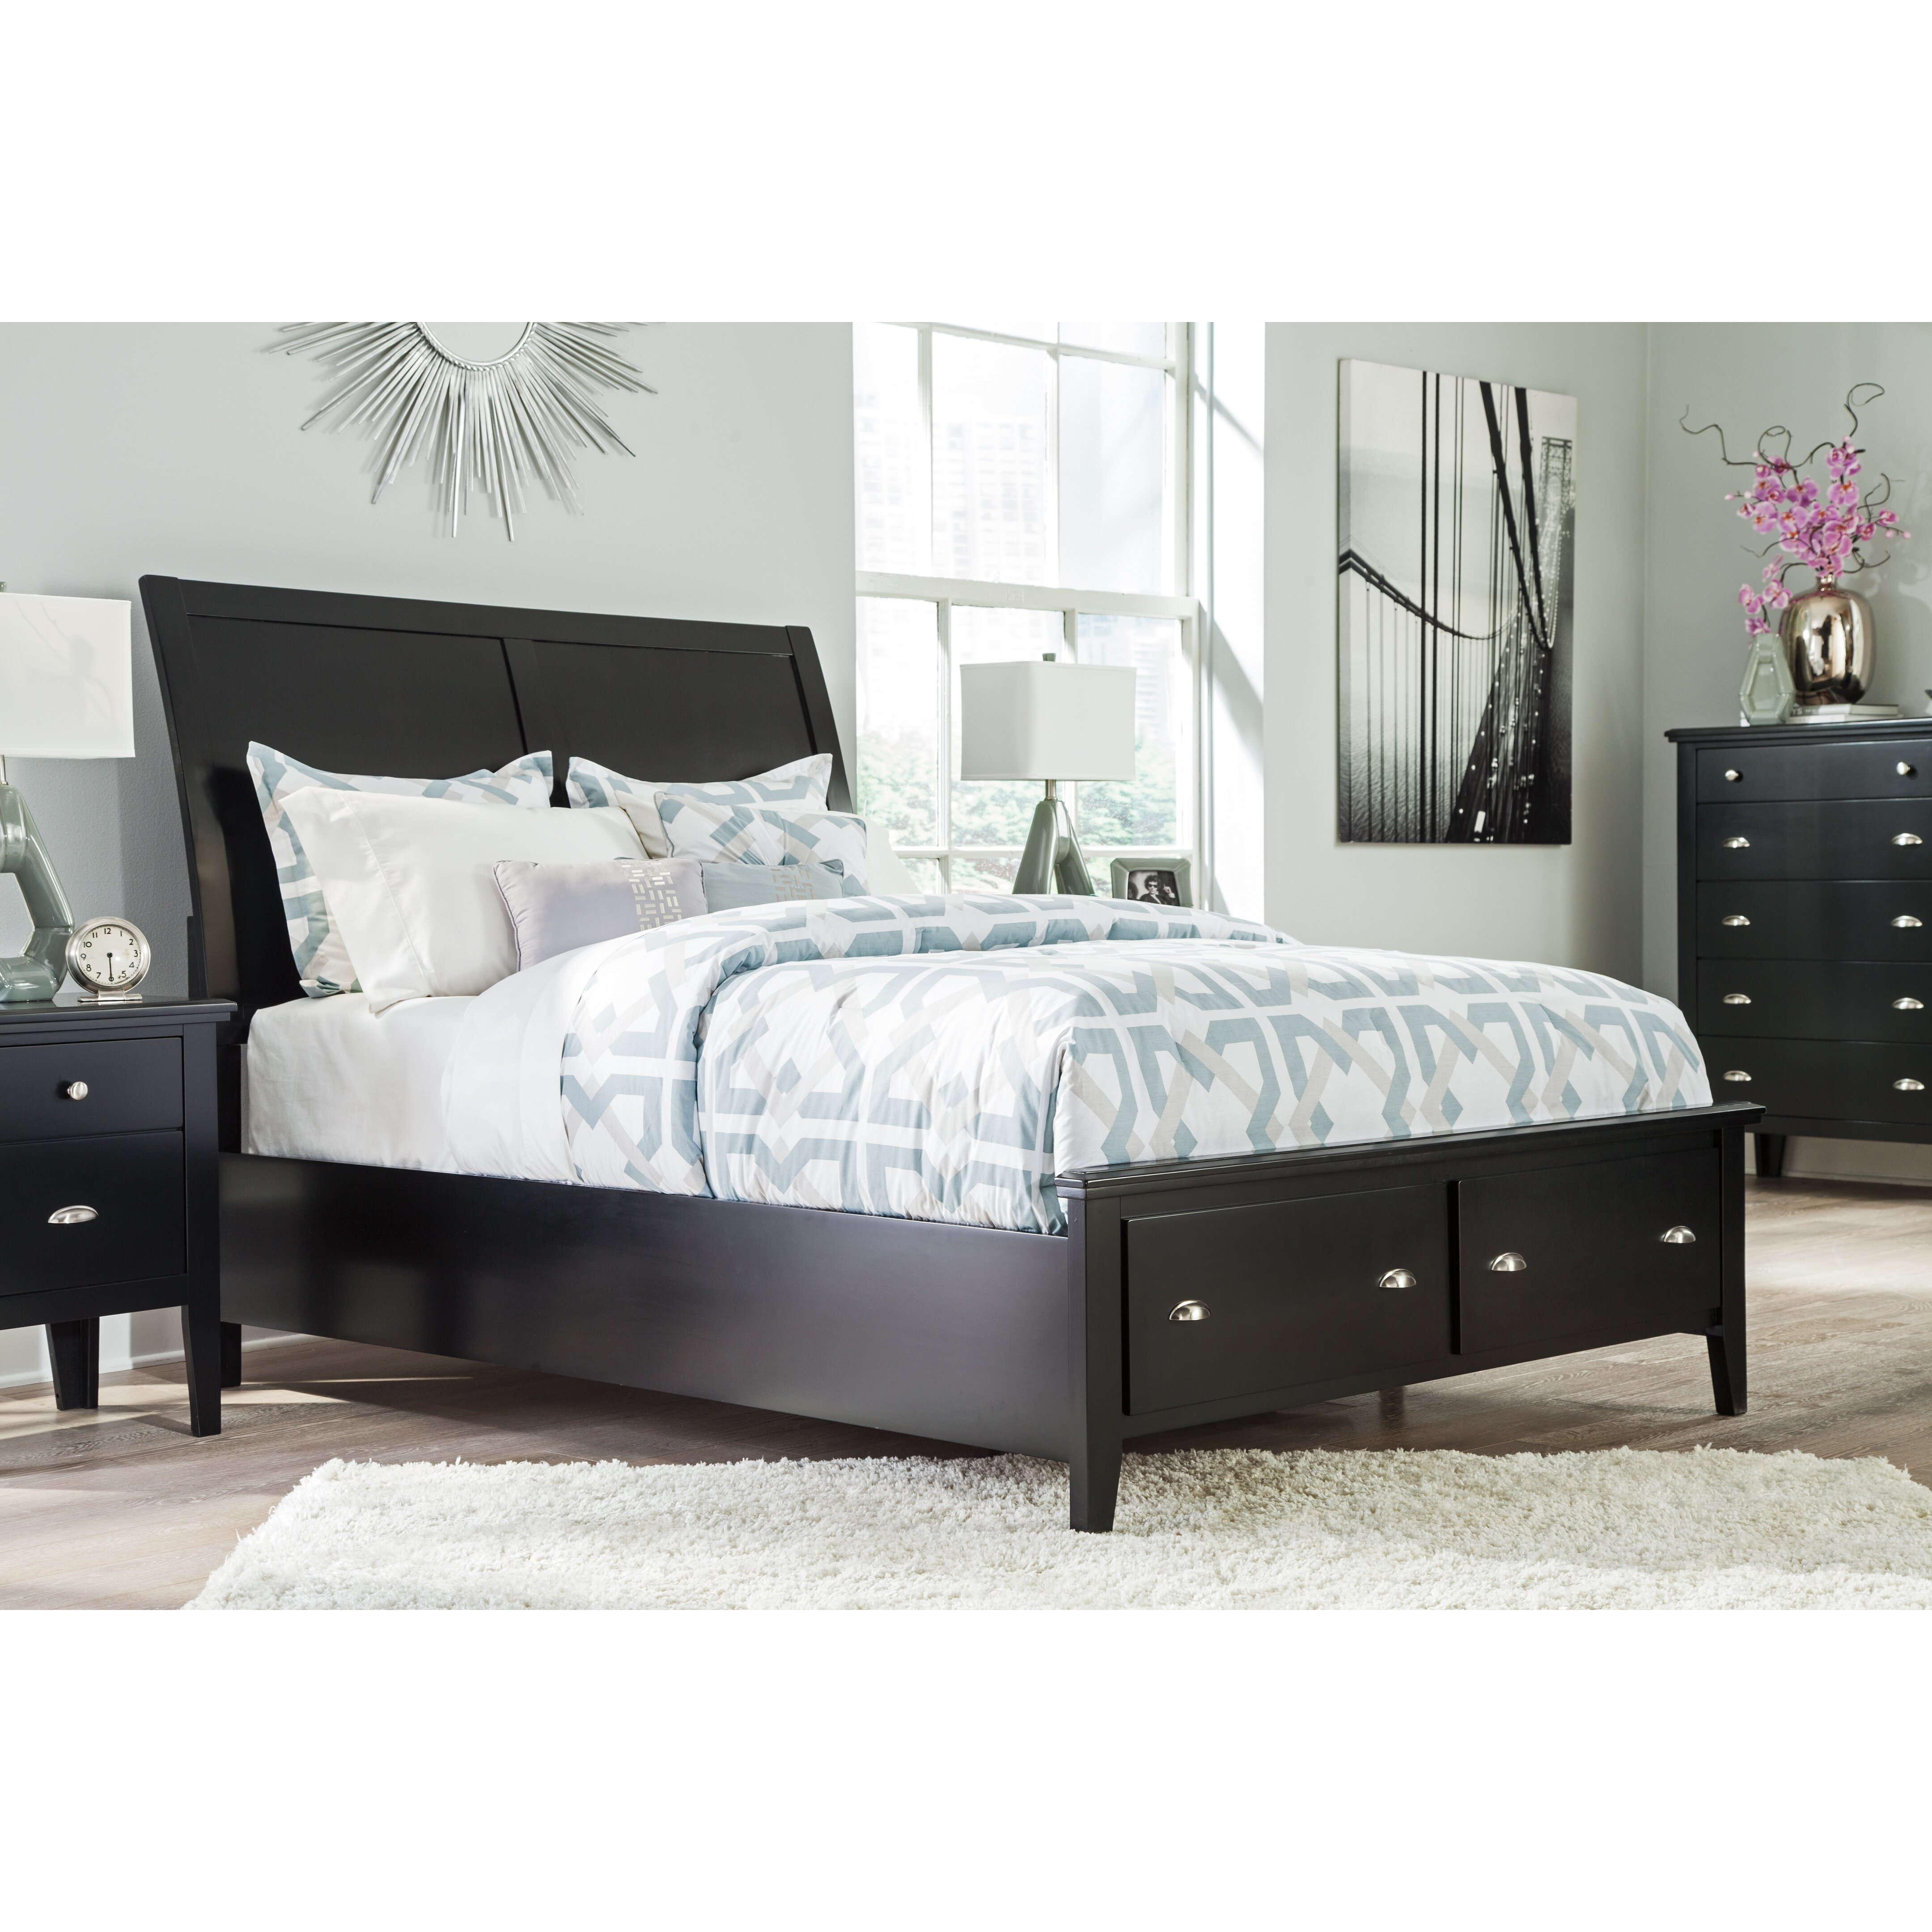 Signature Design By Ashley Braflin Panel Customizable Bedroom Set Reviews Wayfair